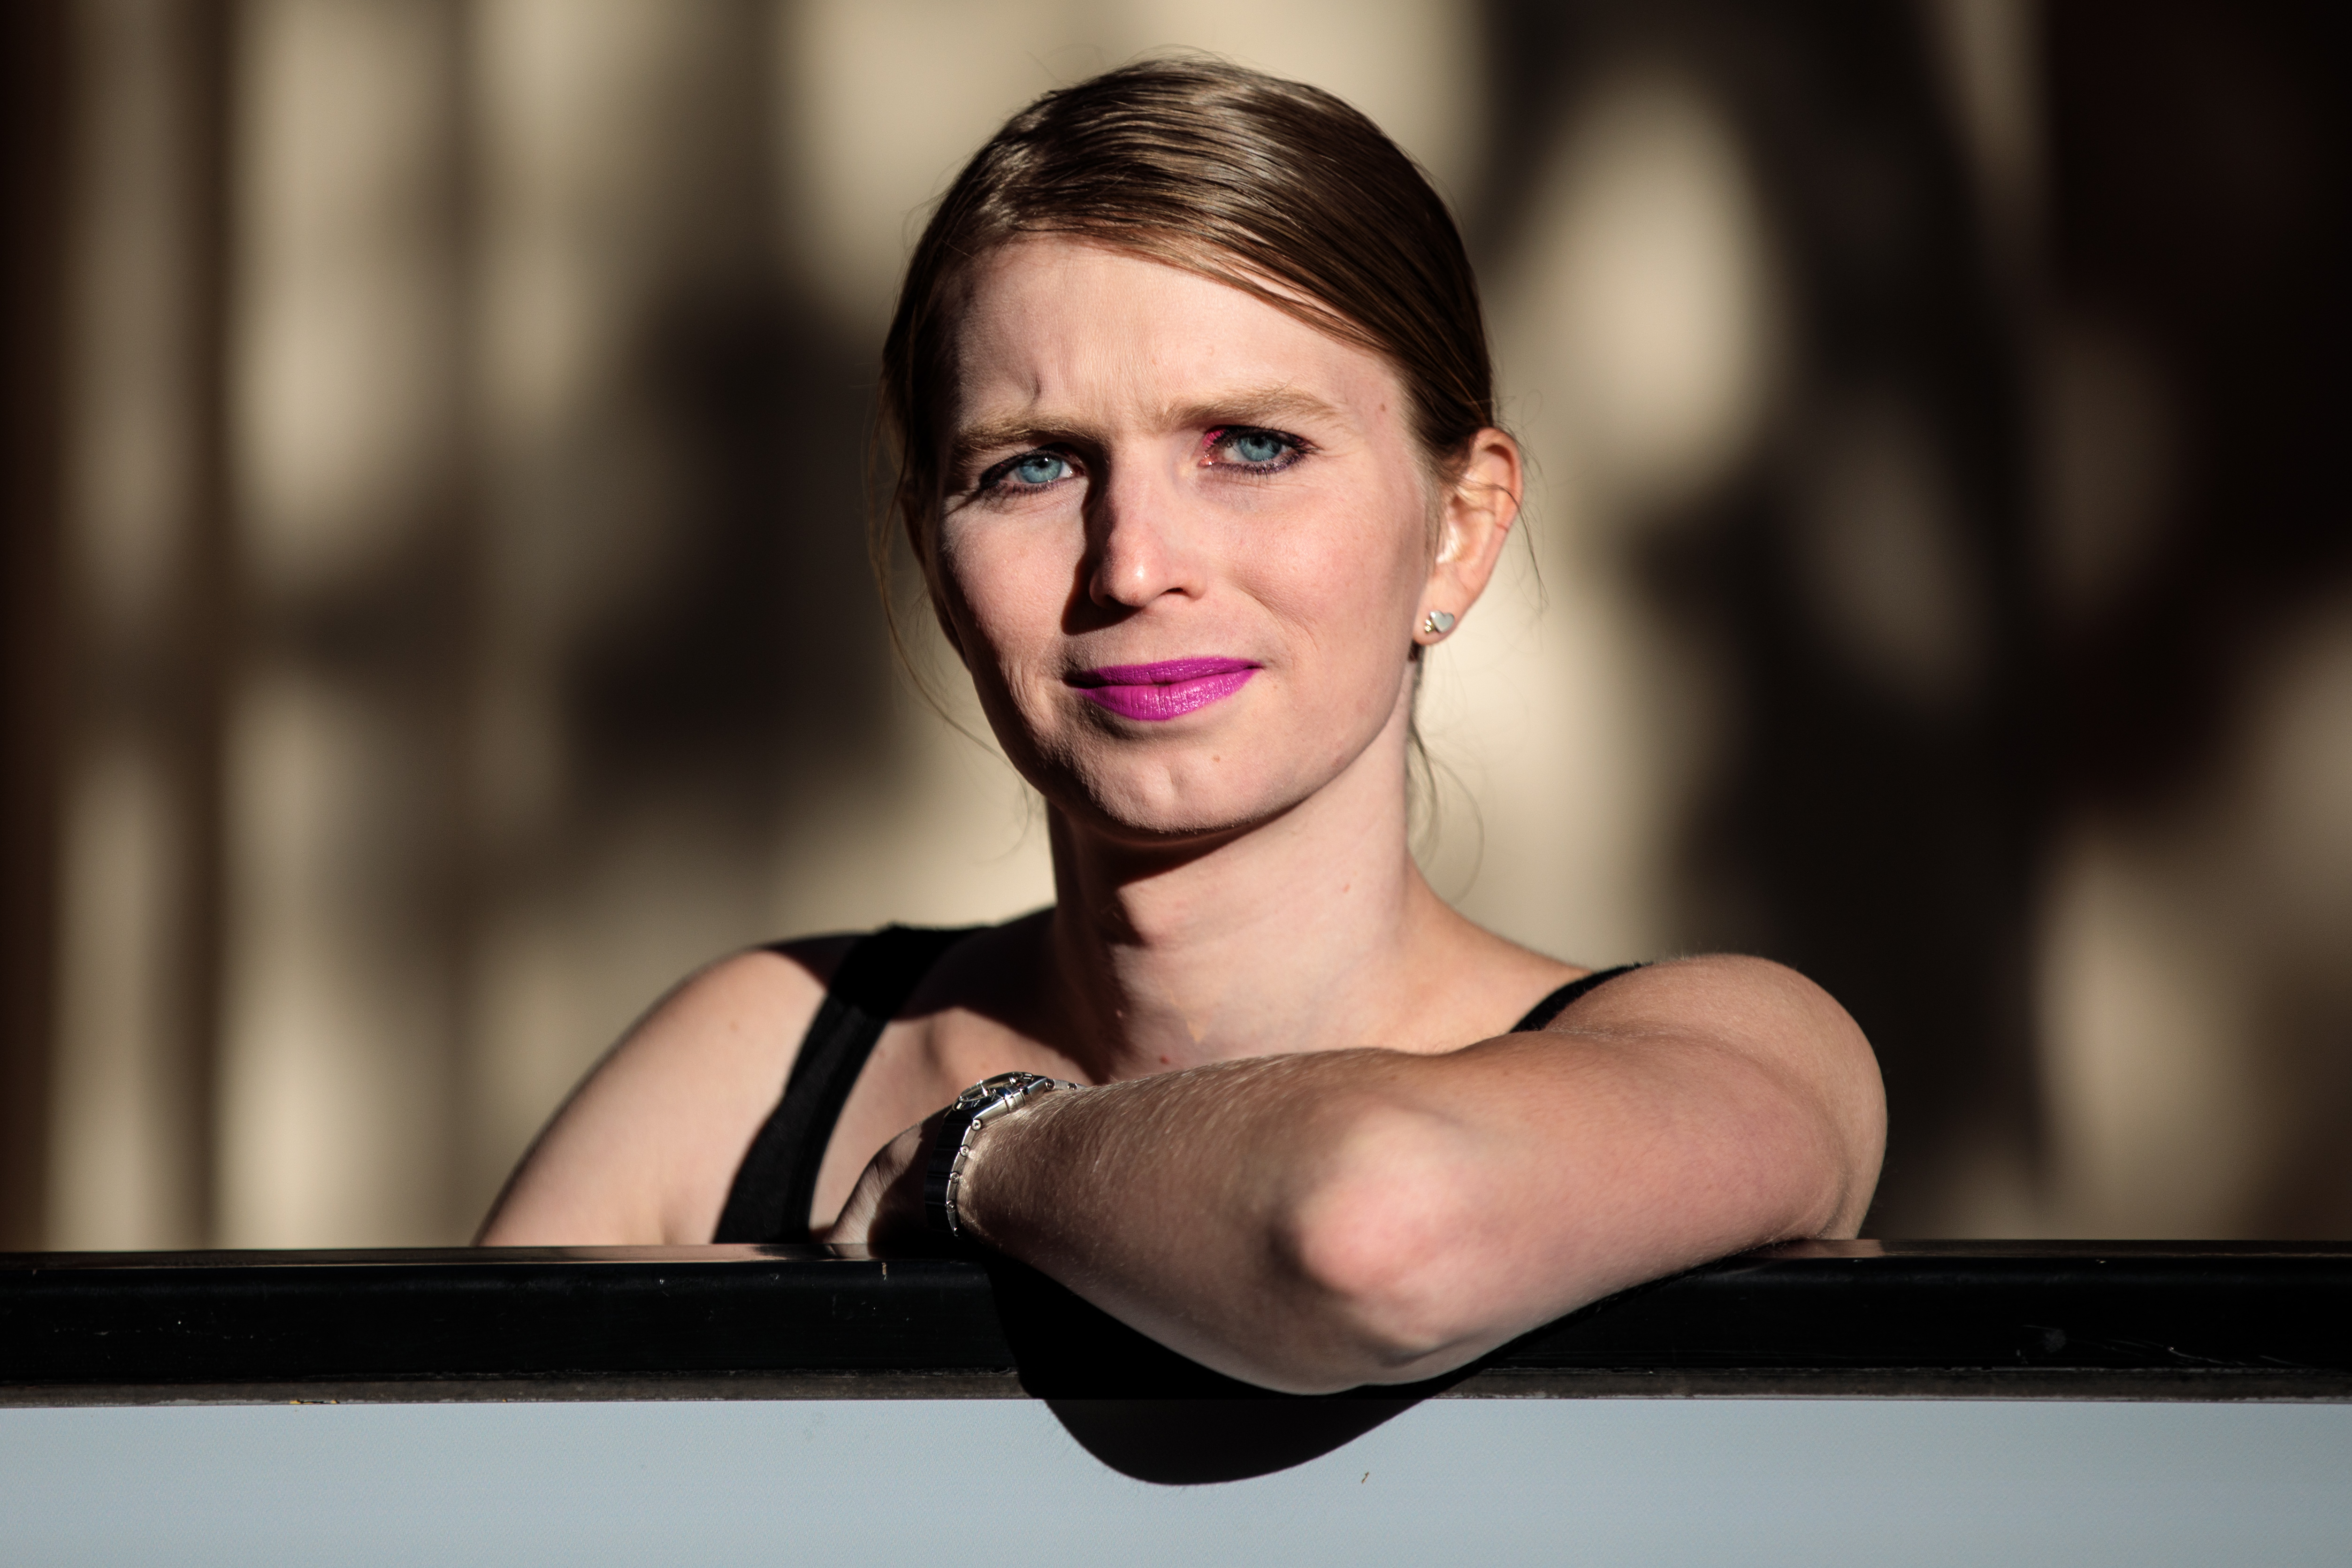 Former American soldier and whistleblower Chelsea Manning poses during a photo call outside the Institute Of Contemporary Arts (ICA) ahead of a Q&A event on October 1, 2018 in London, England.